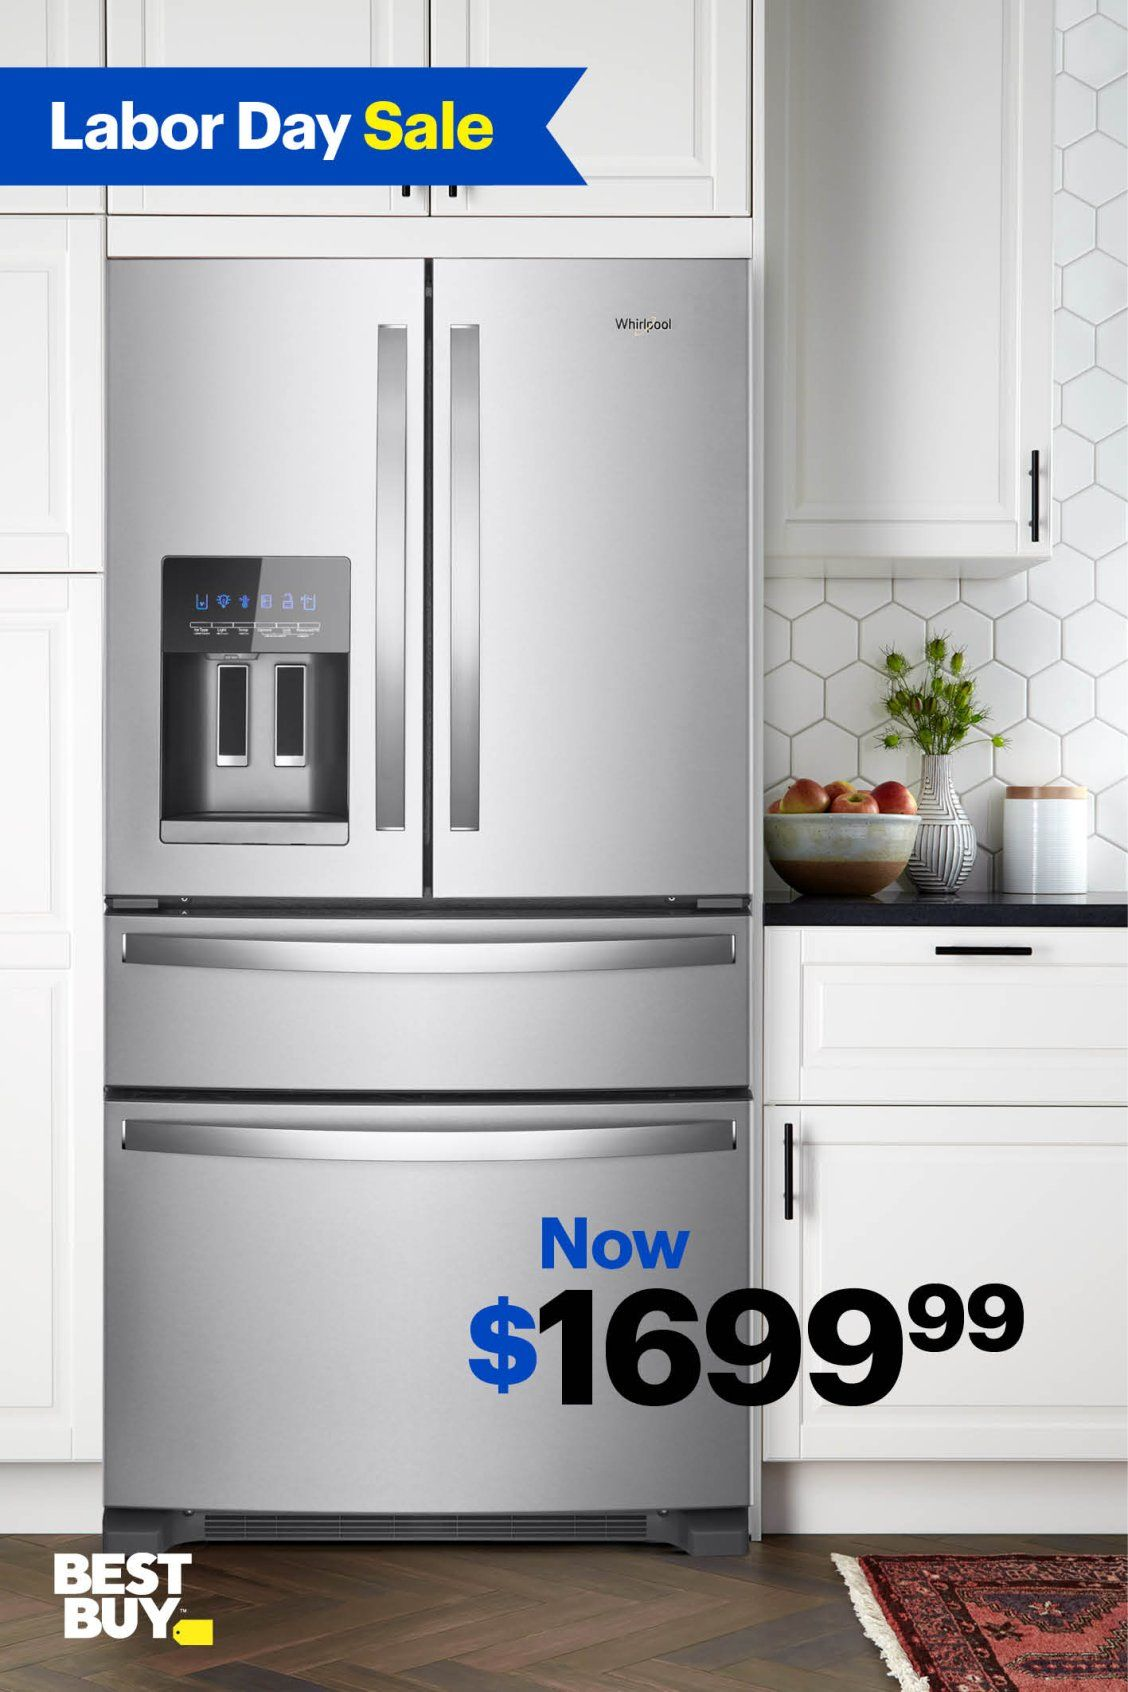 Save Up To 40 On Appliance Top Deals This Whirlpool